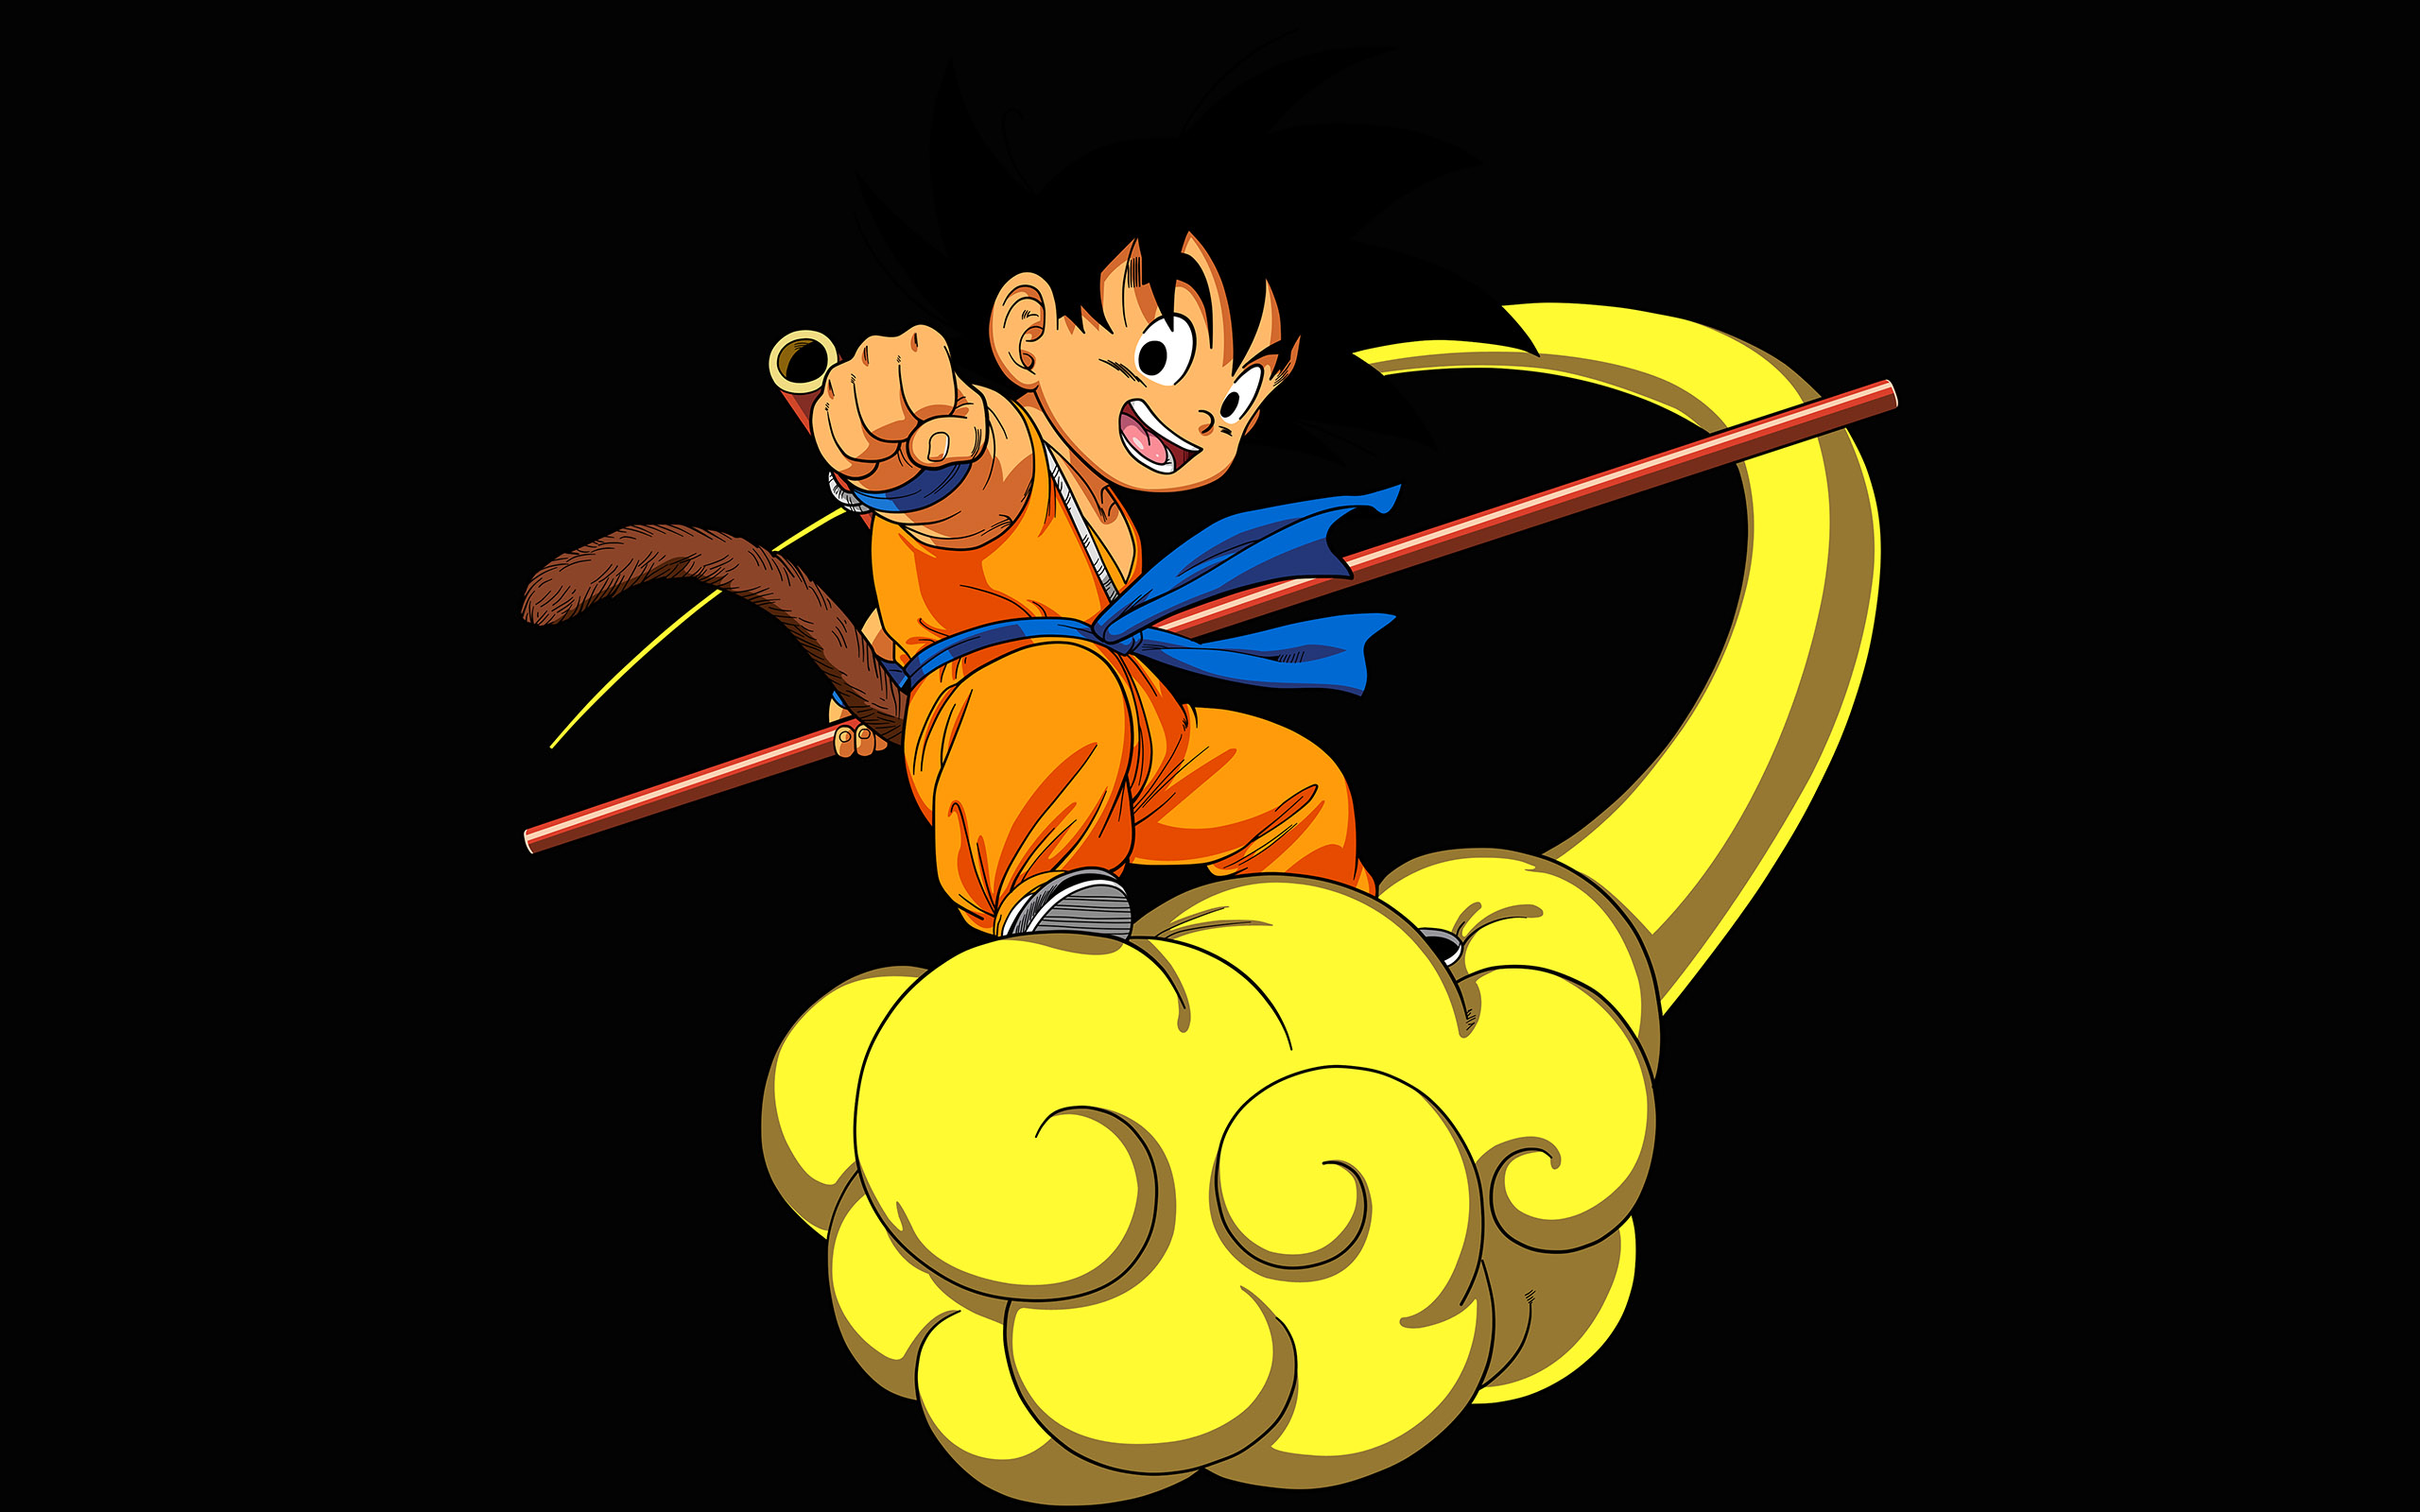 Boxing Iphone Wallpaper Ap05 Dragonball Goku Cloud Fly Anime Art Illust Papers Co